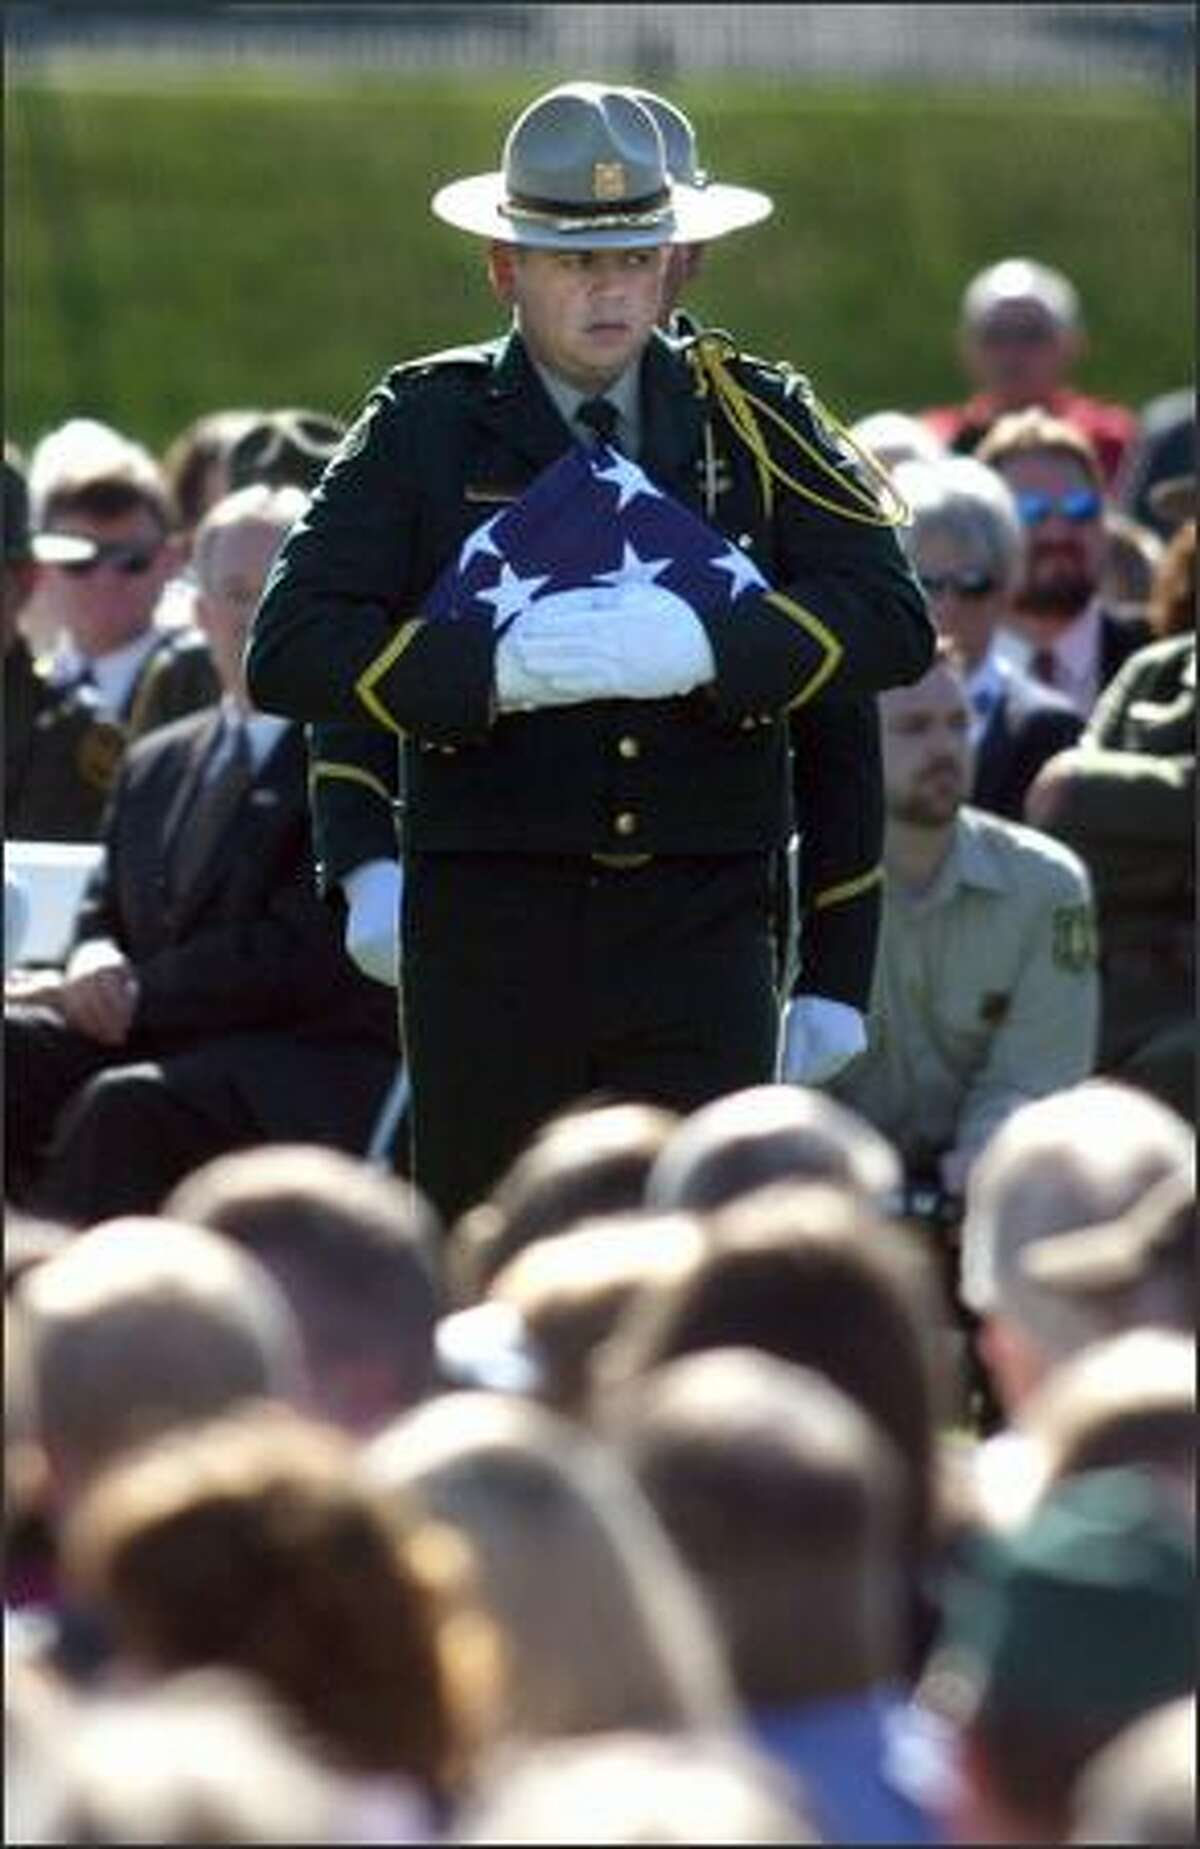 Forest Service officials prepare to unforld, display and refold an American flag to be given to Kristine Fairbanks' daughter, Whitney Fairbanks, during a memorial service for the slain officer in Port Angeles on Monday.